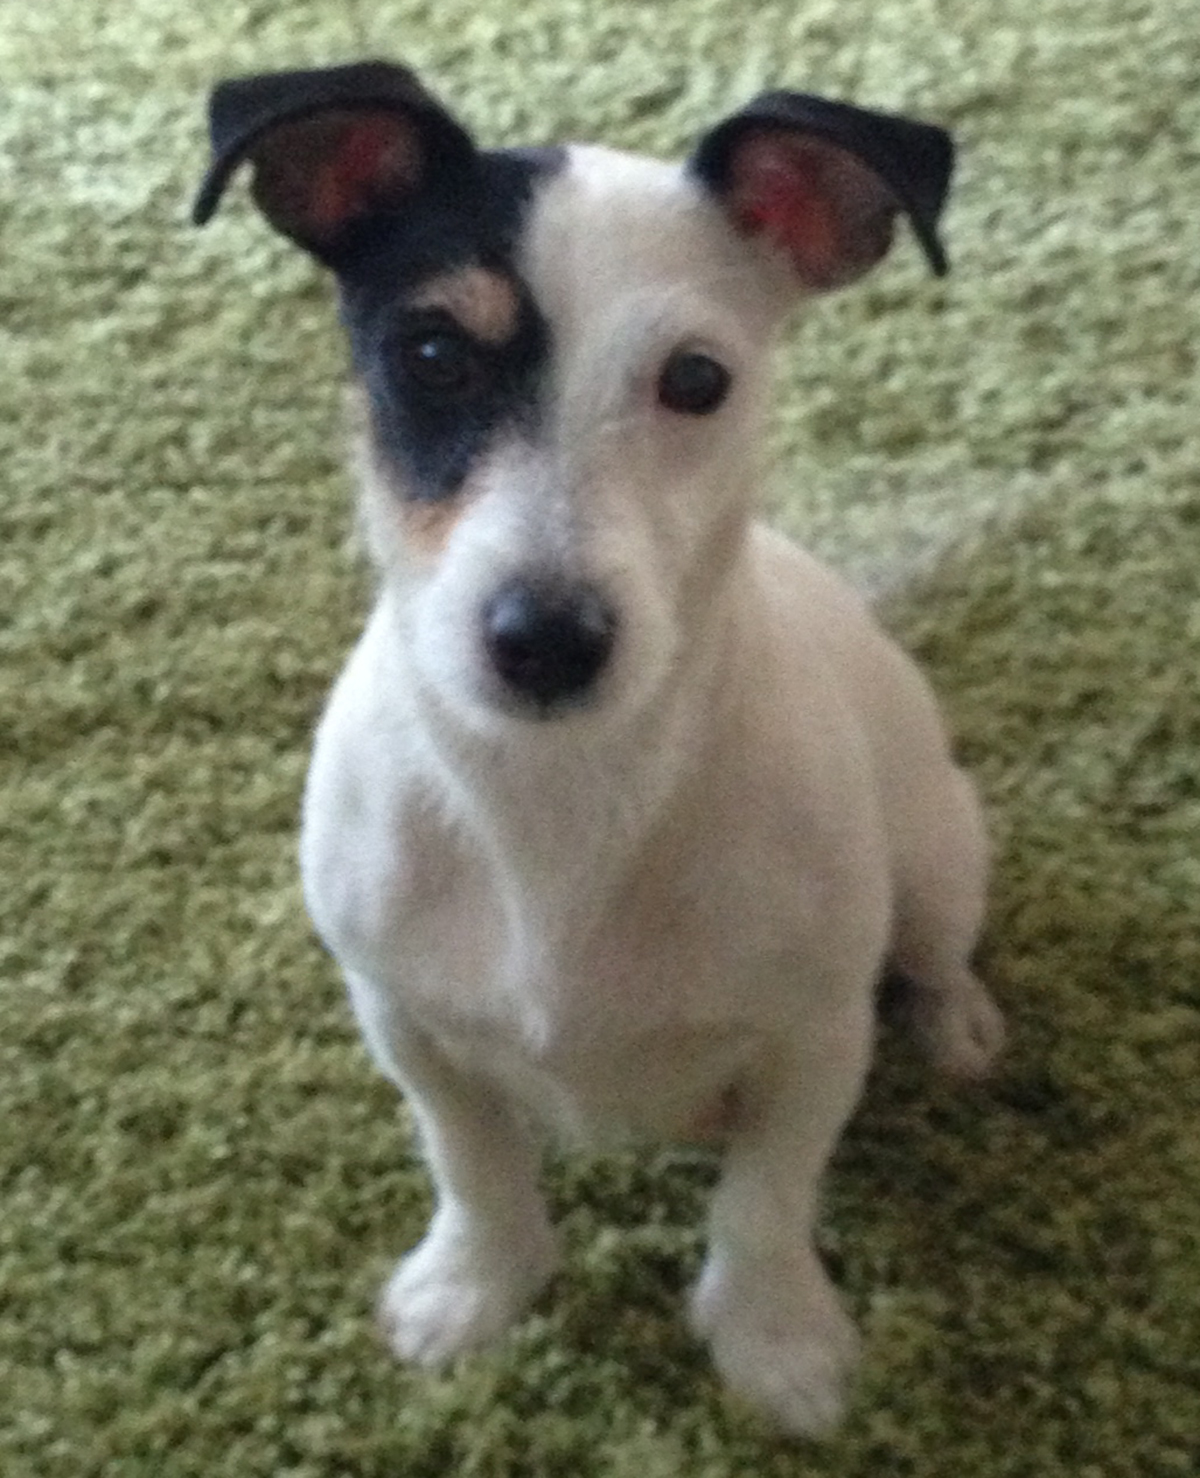 News Shopper: Luna is Pet of the Day